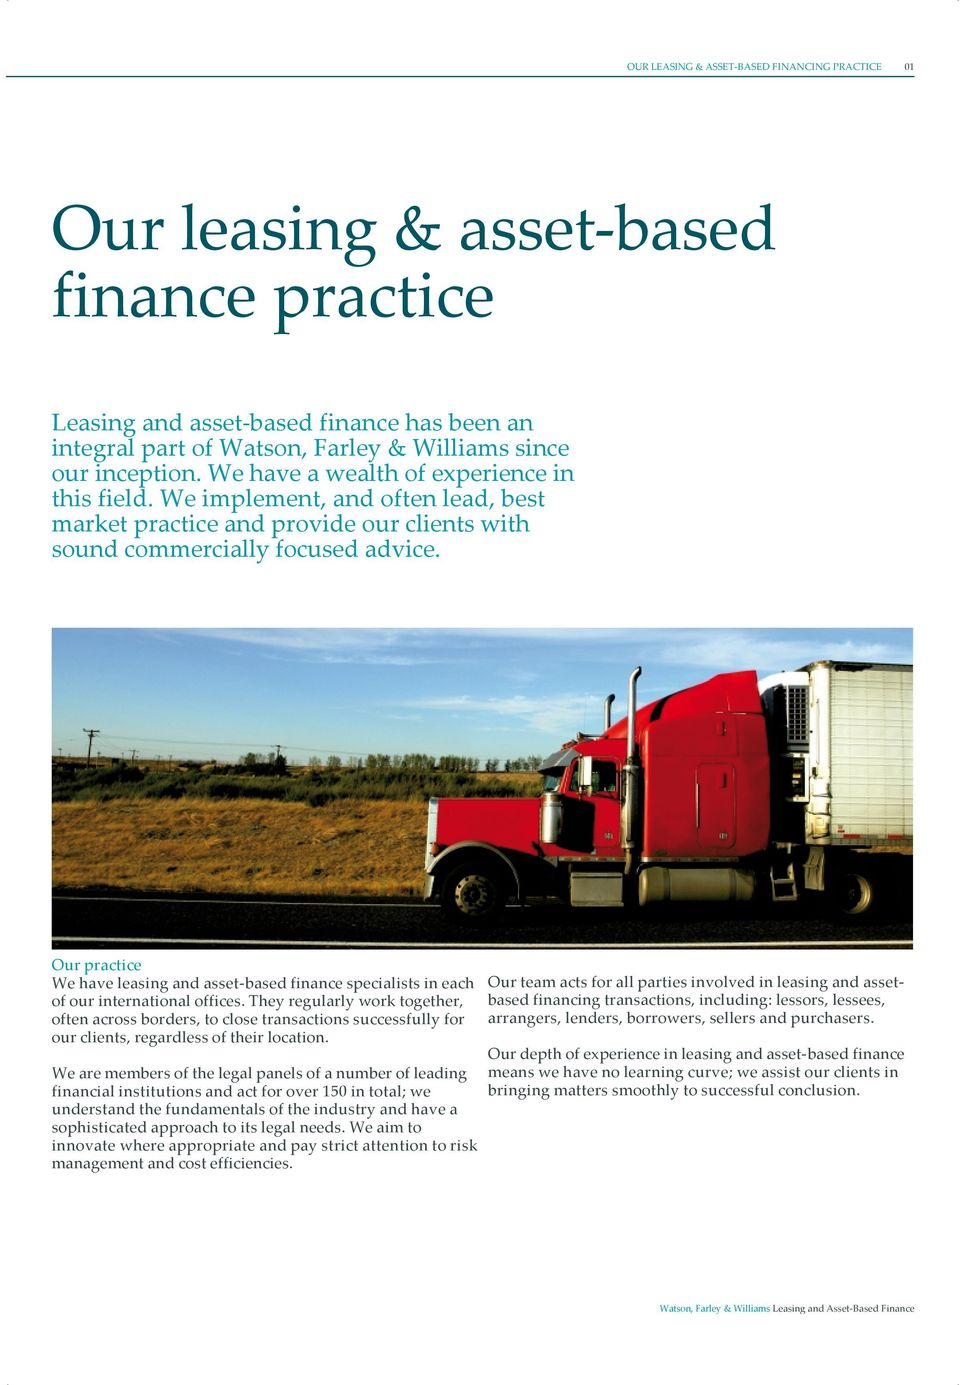 Our practice We have leasing and asset based finance specialists in each of our international offices.